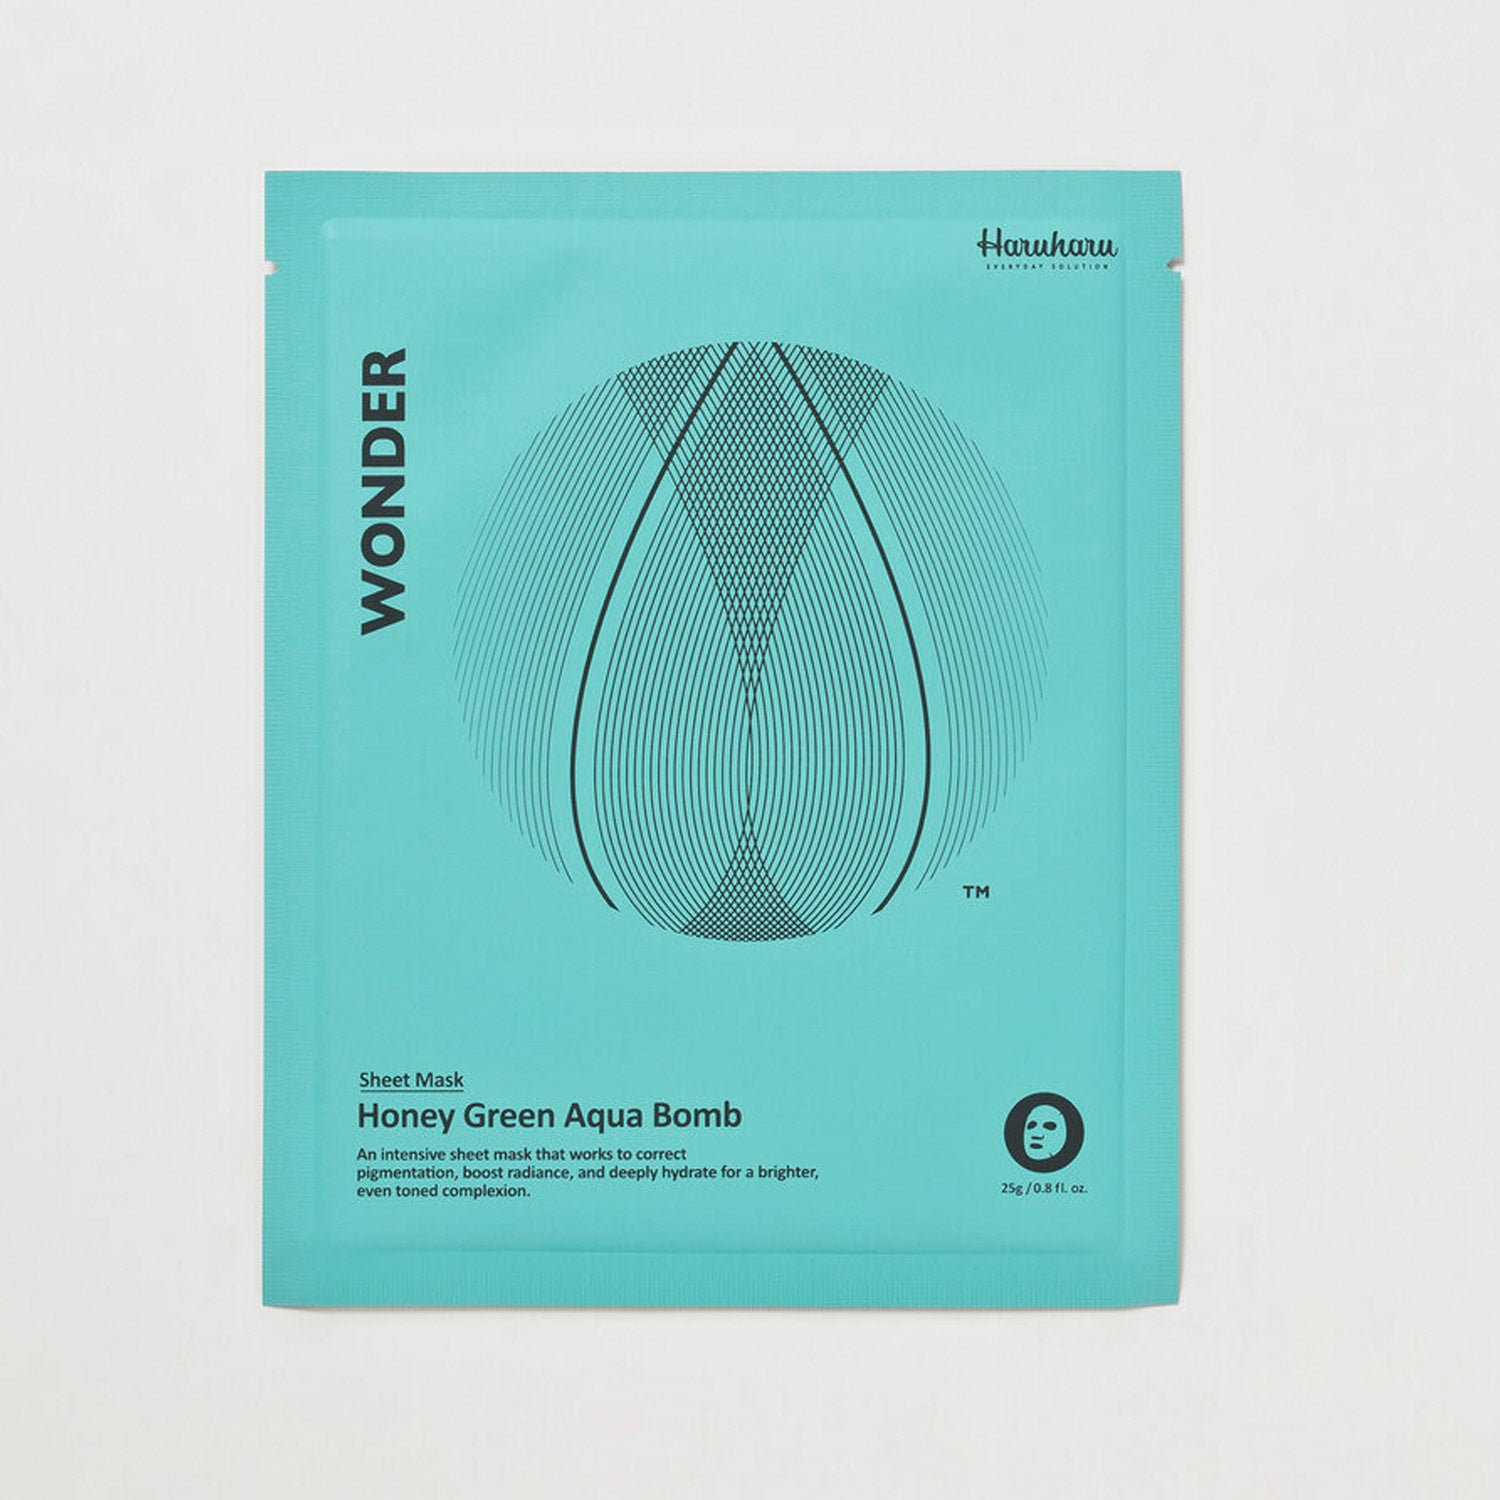 Honey Green Aqua Bomb Mask, 0.9 oz. (25 g)/5 sheets